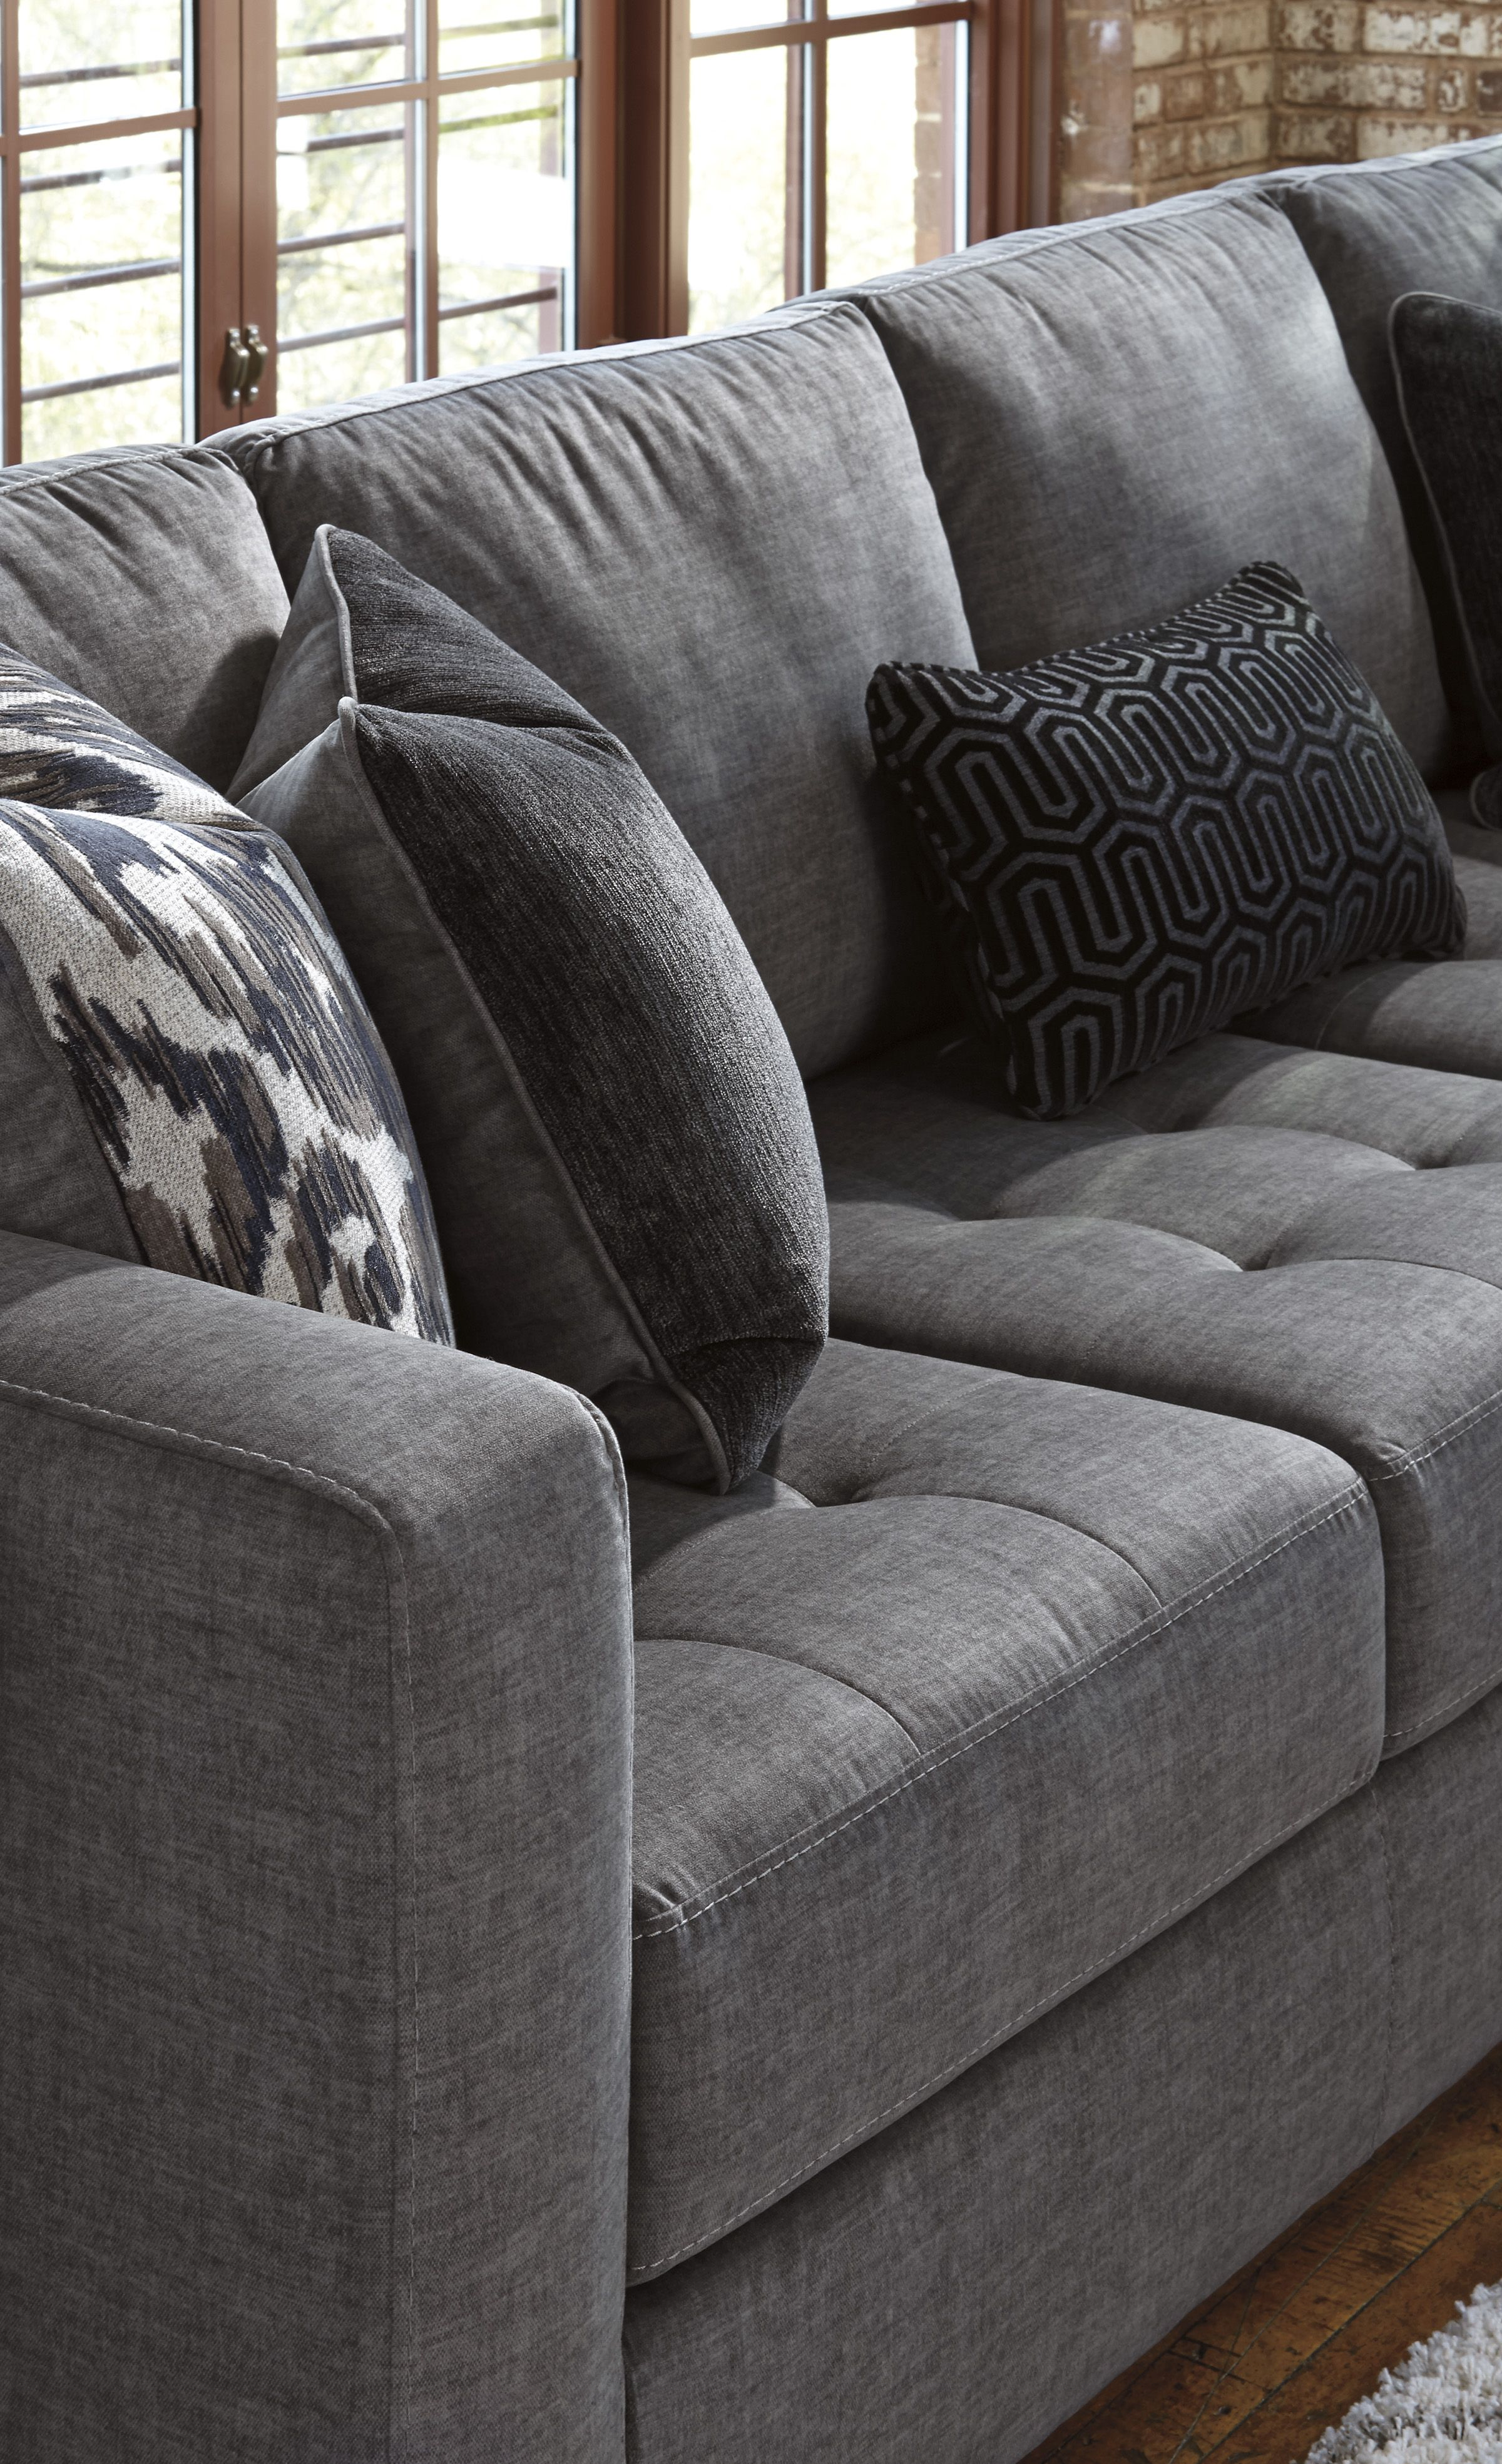 Detail of the ashley homestore owensbe sectional visit your local store today to view it